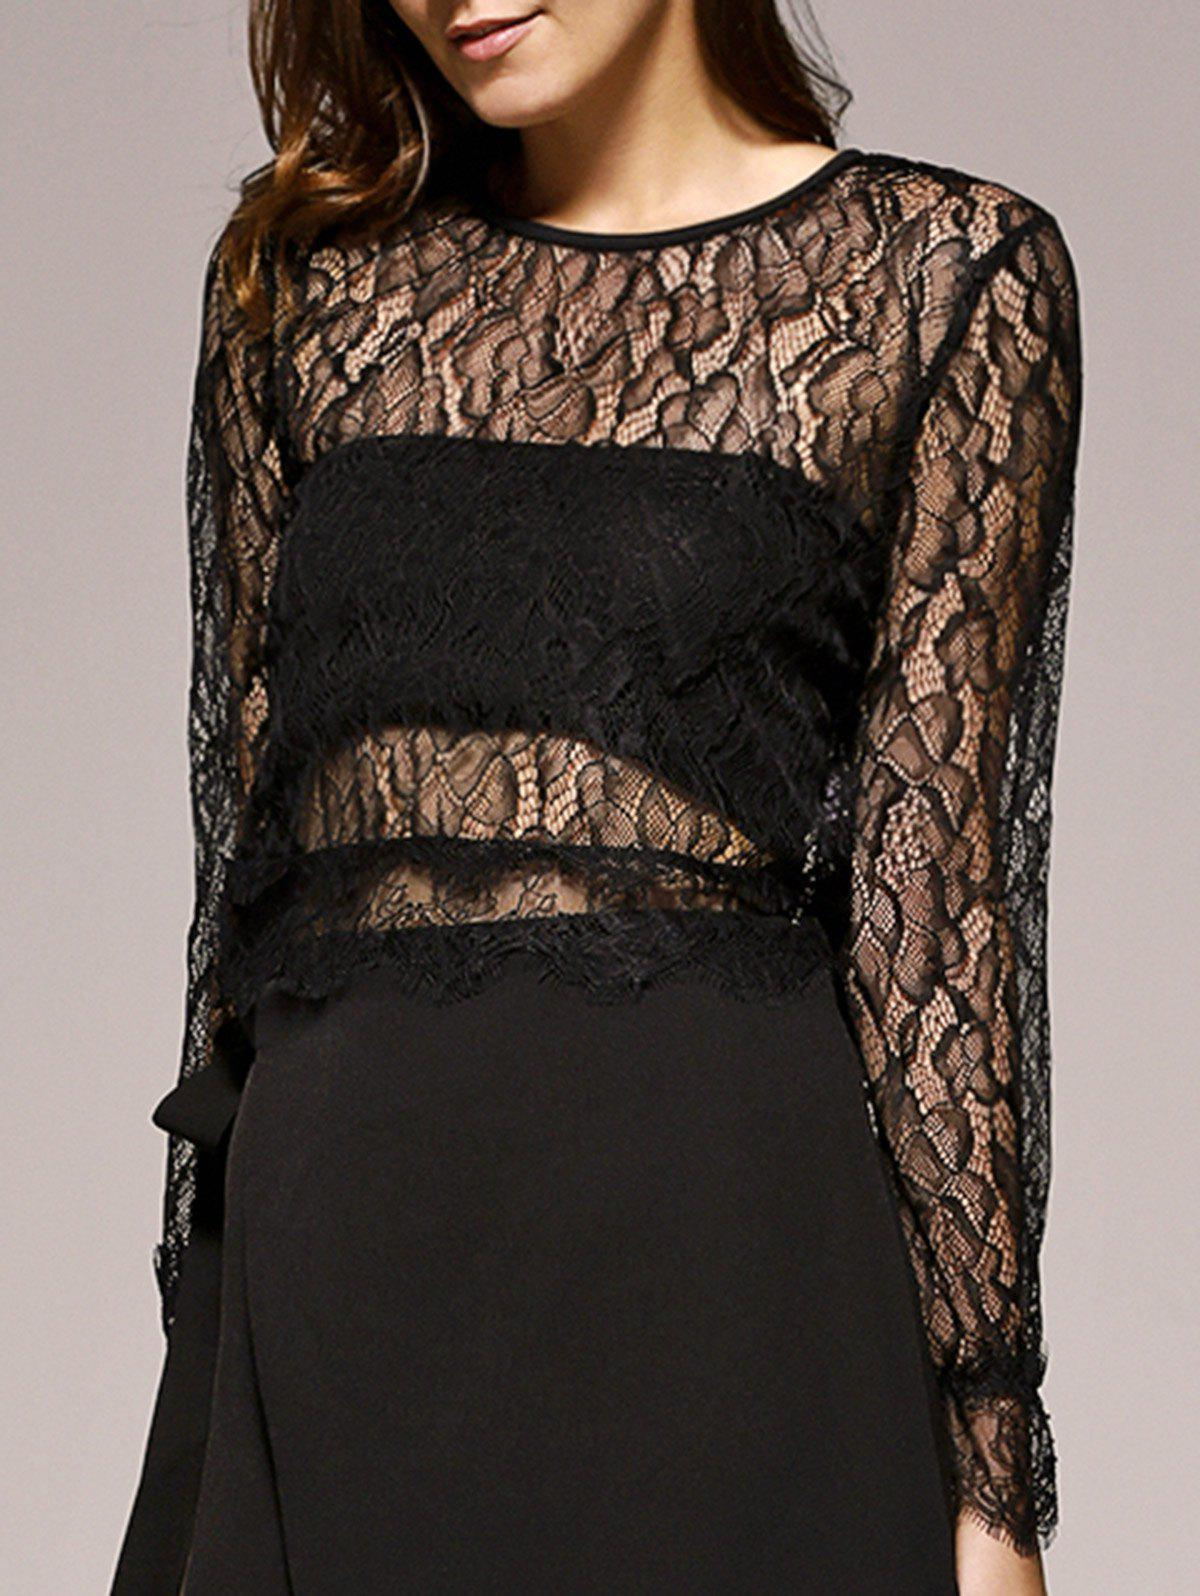 Bell Sleeves Lace Openwork Blouse - BLACK 2XL